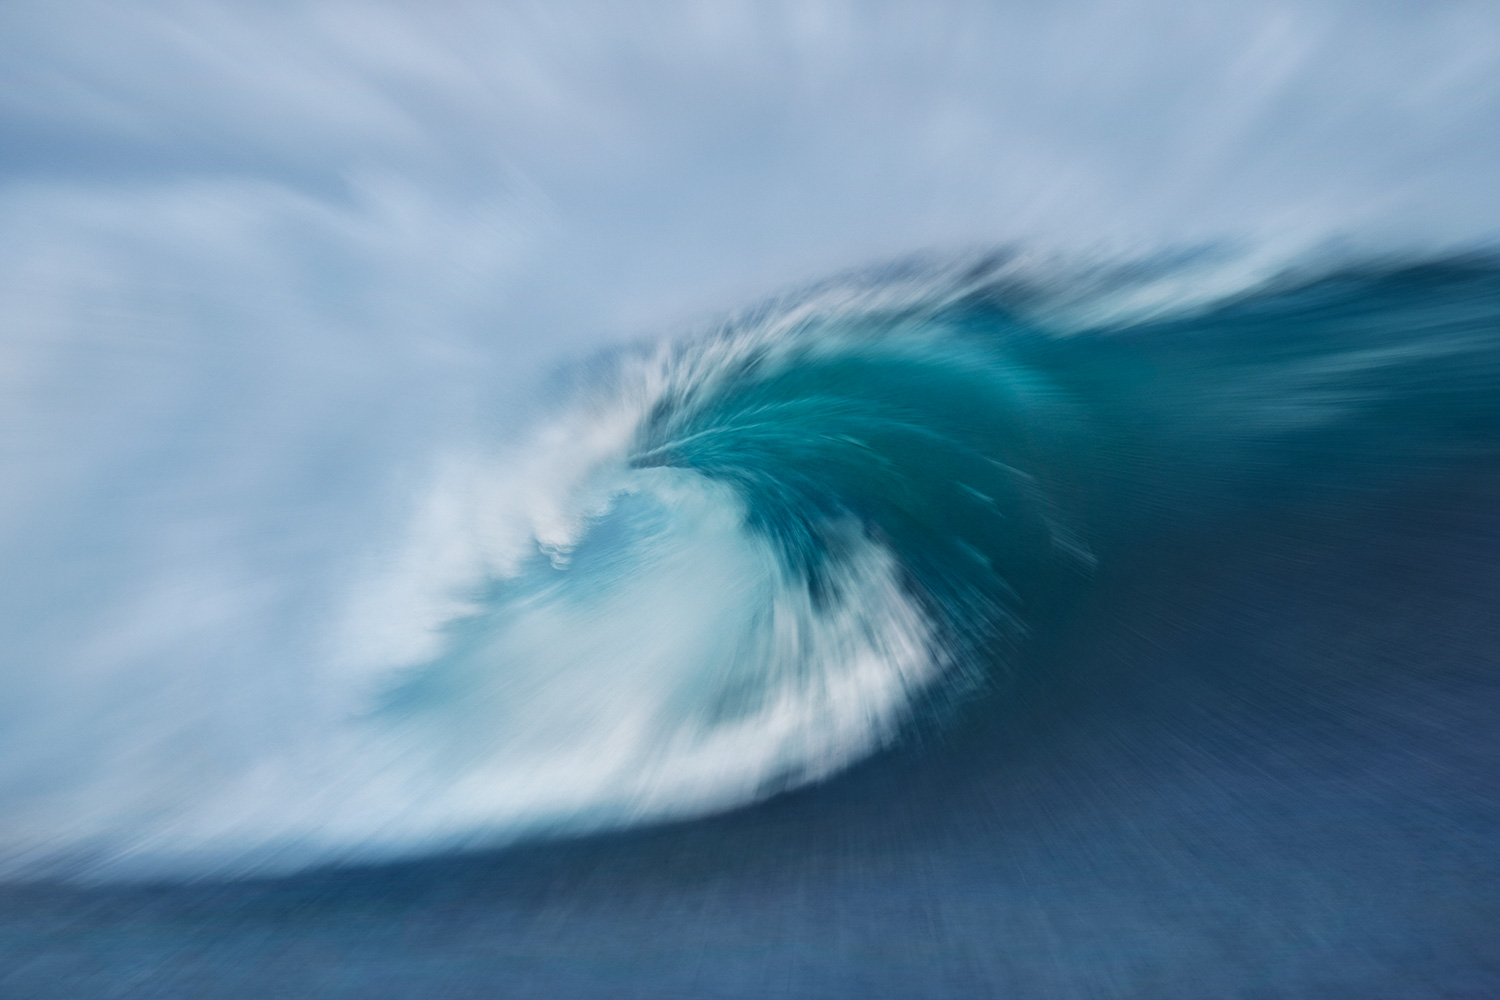 Teahupoo 2 giclee print on archival paper, limited edition of 7 60 x 90 cm